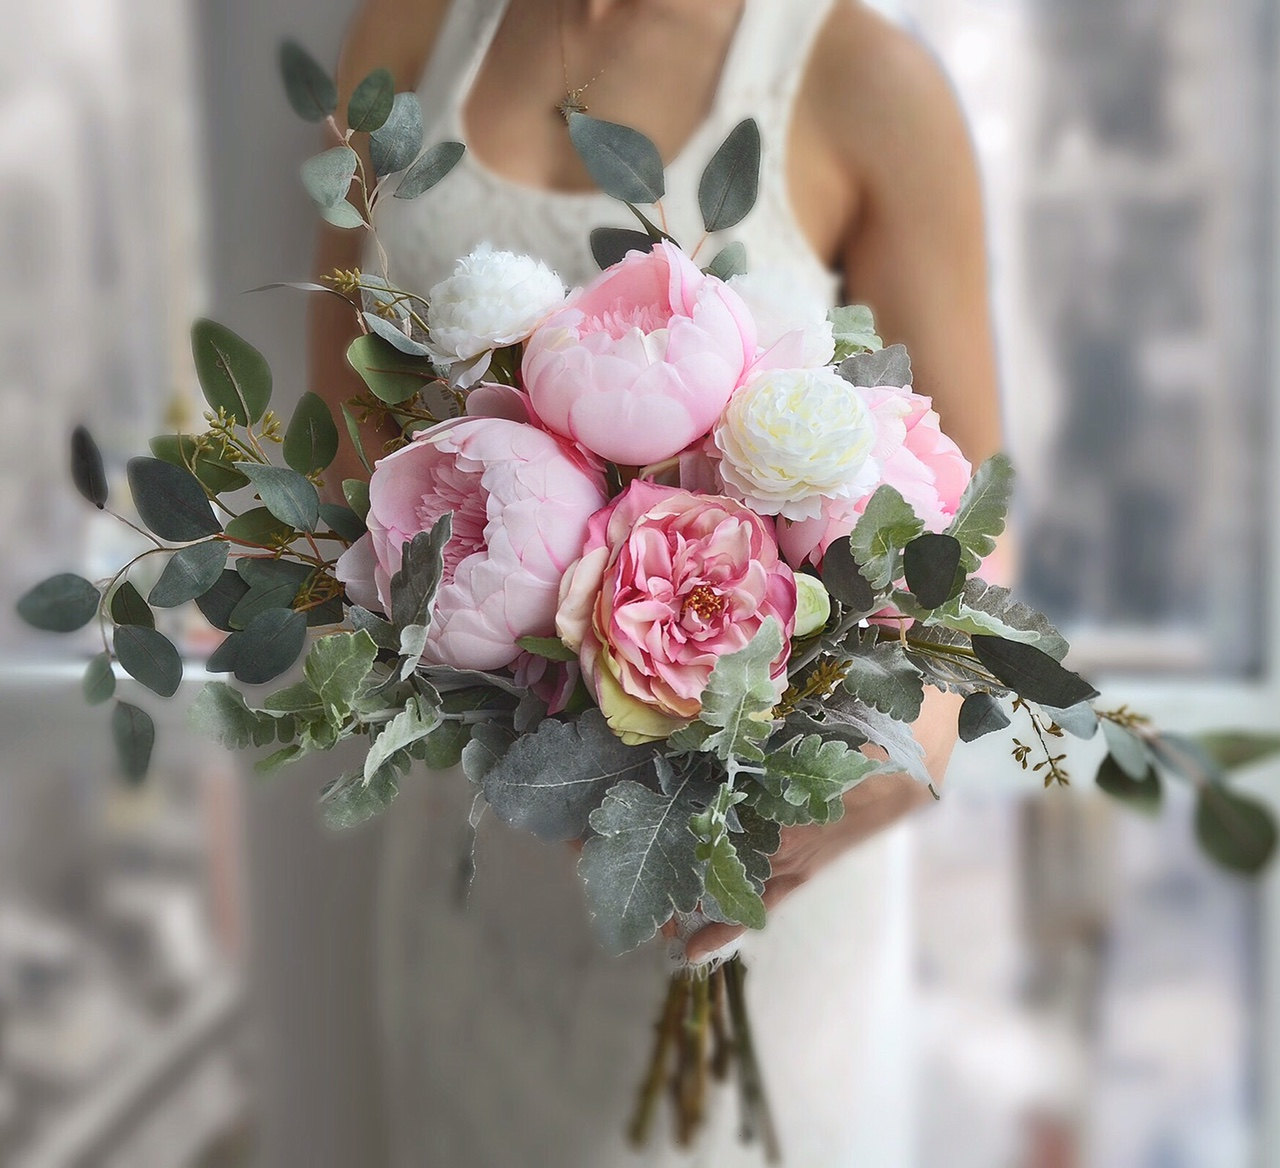 Ideas For Wedding Flowers: Wedding Bouquet Ideas Without Flowers